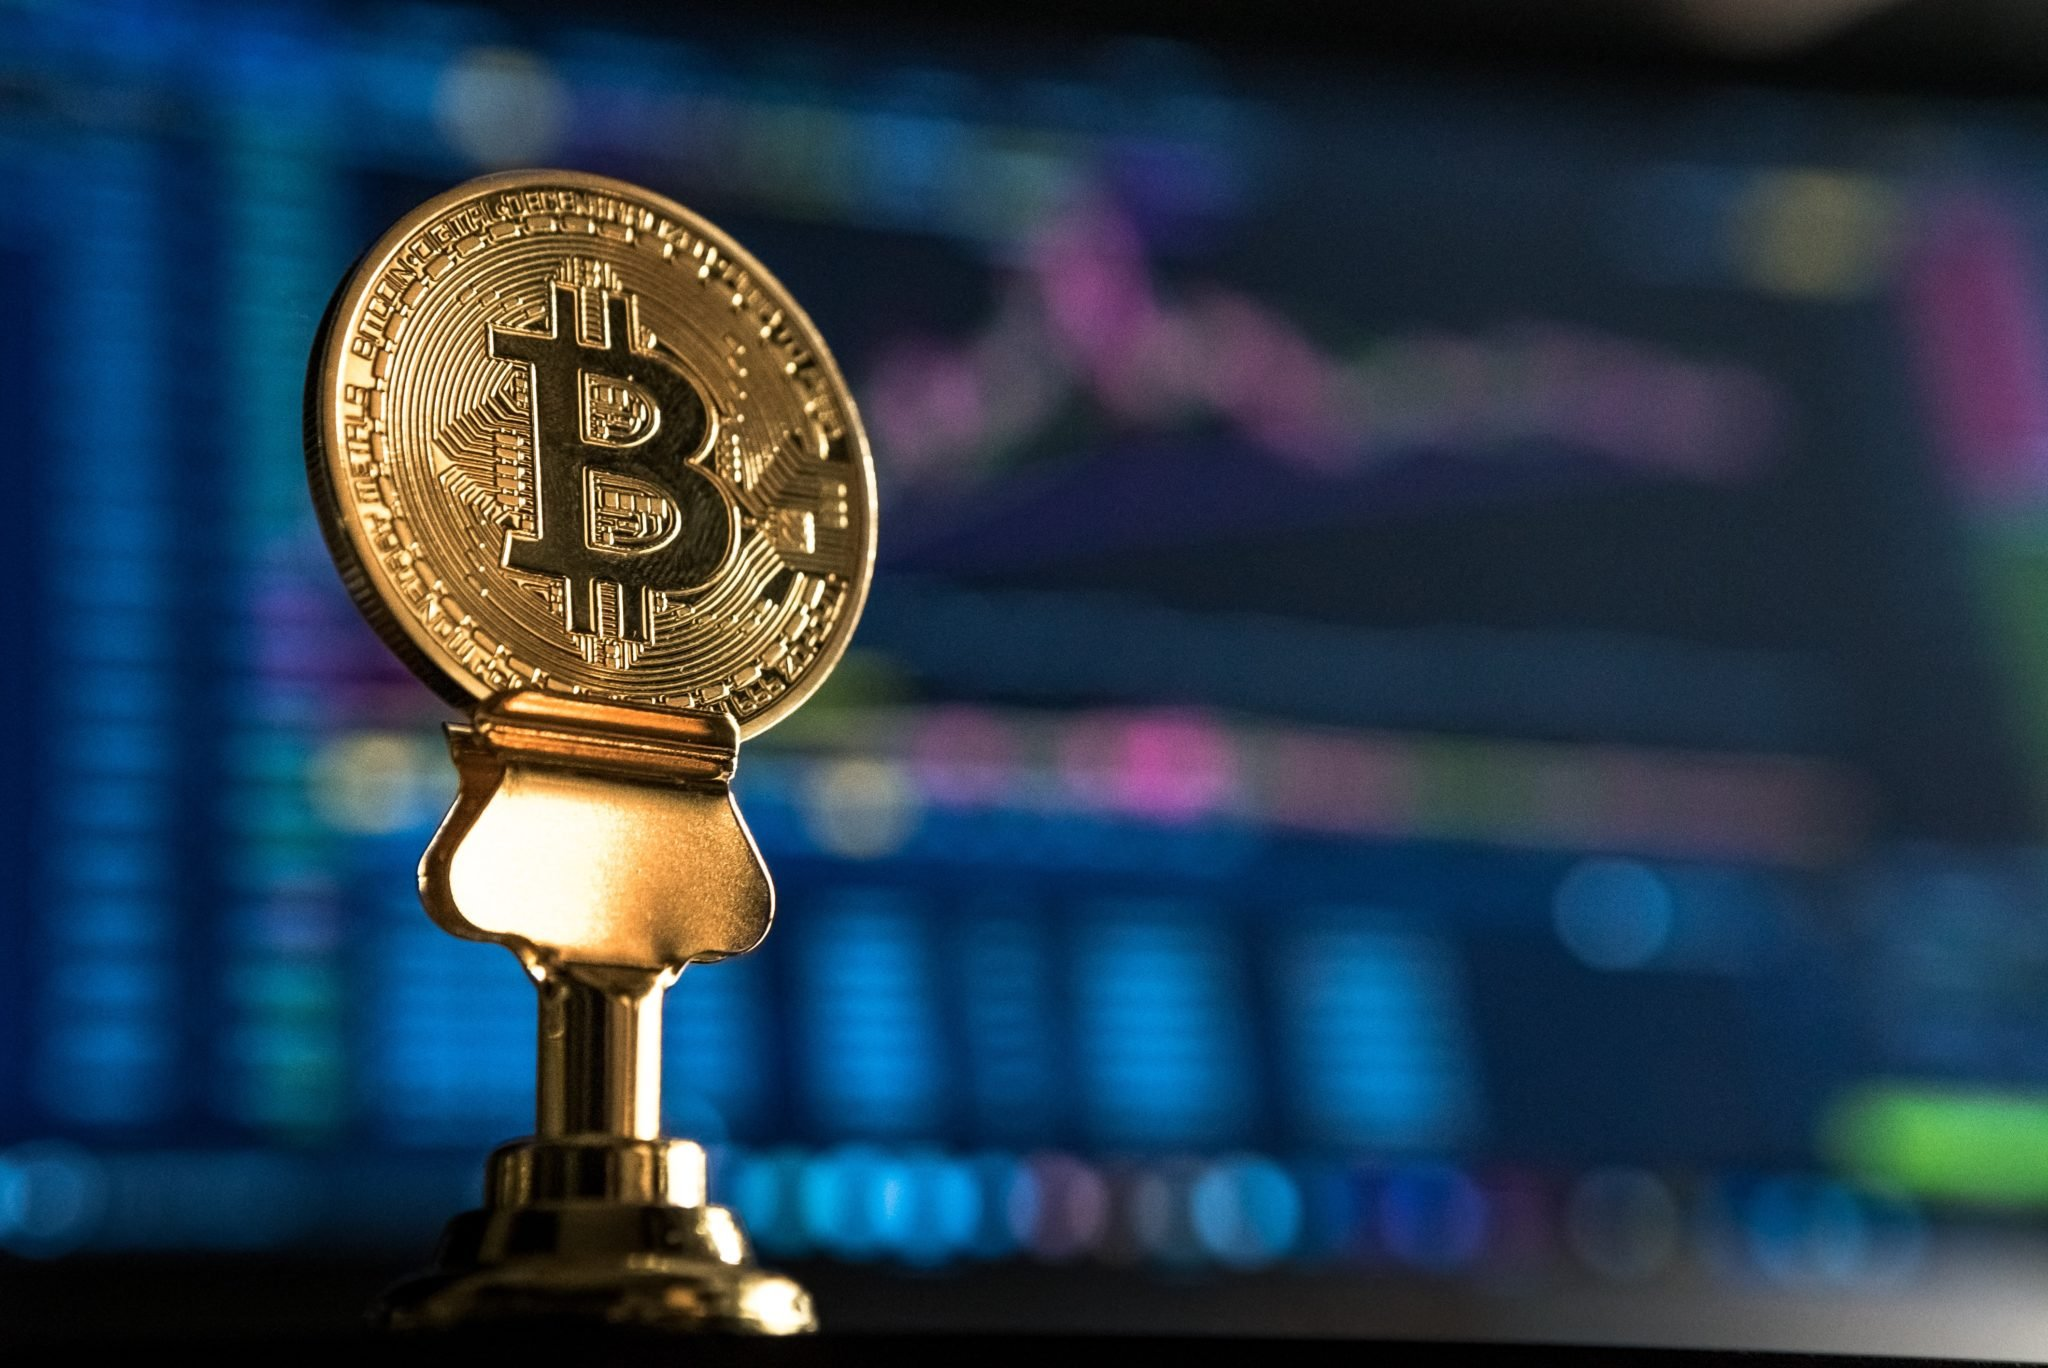 Bitcoin (BTC) on October 30, 2020